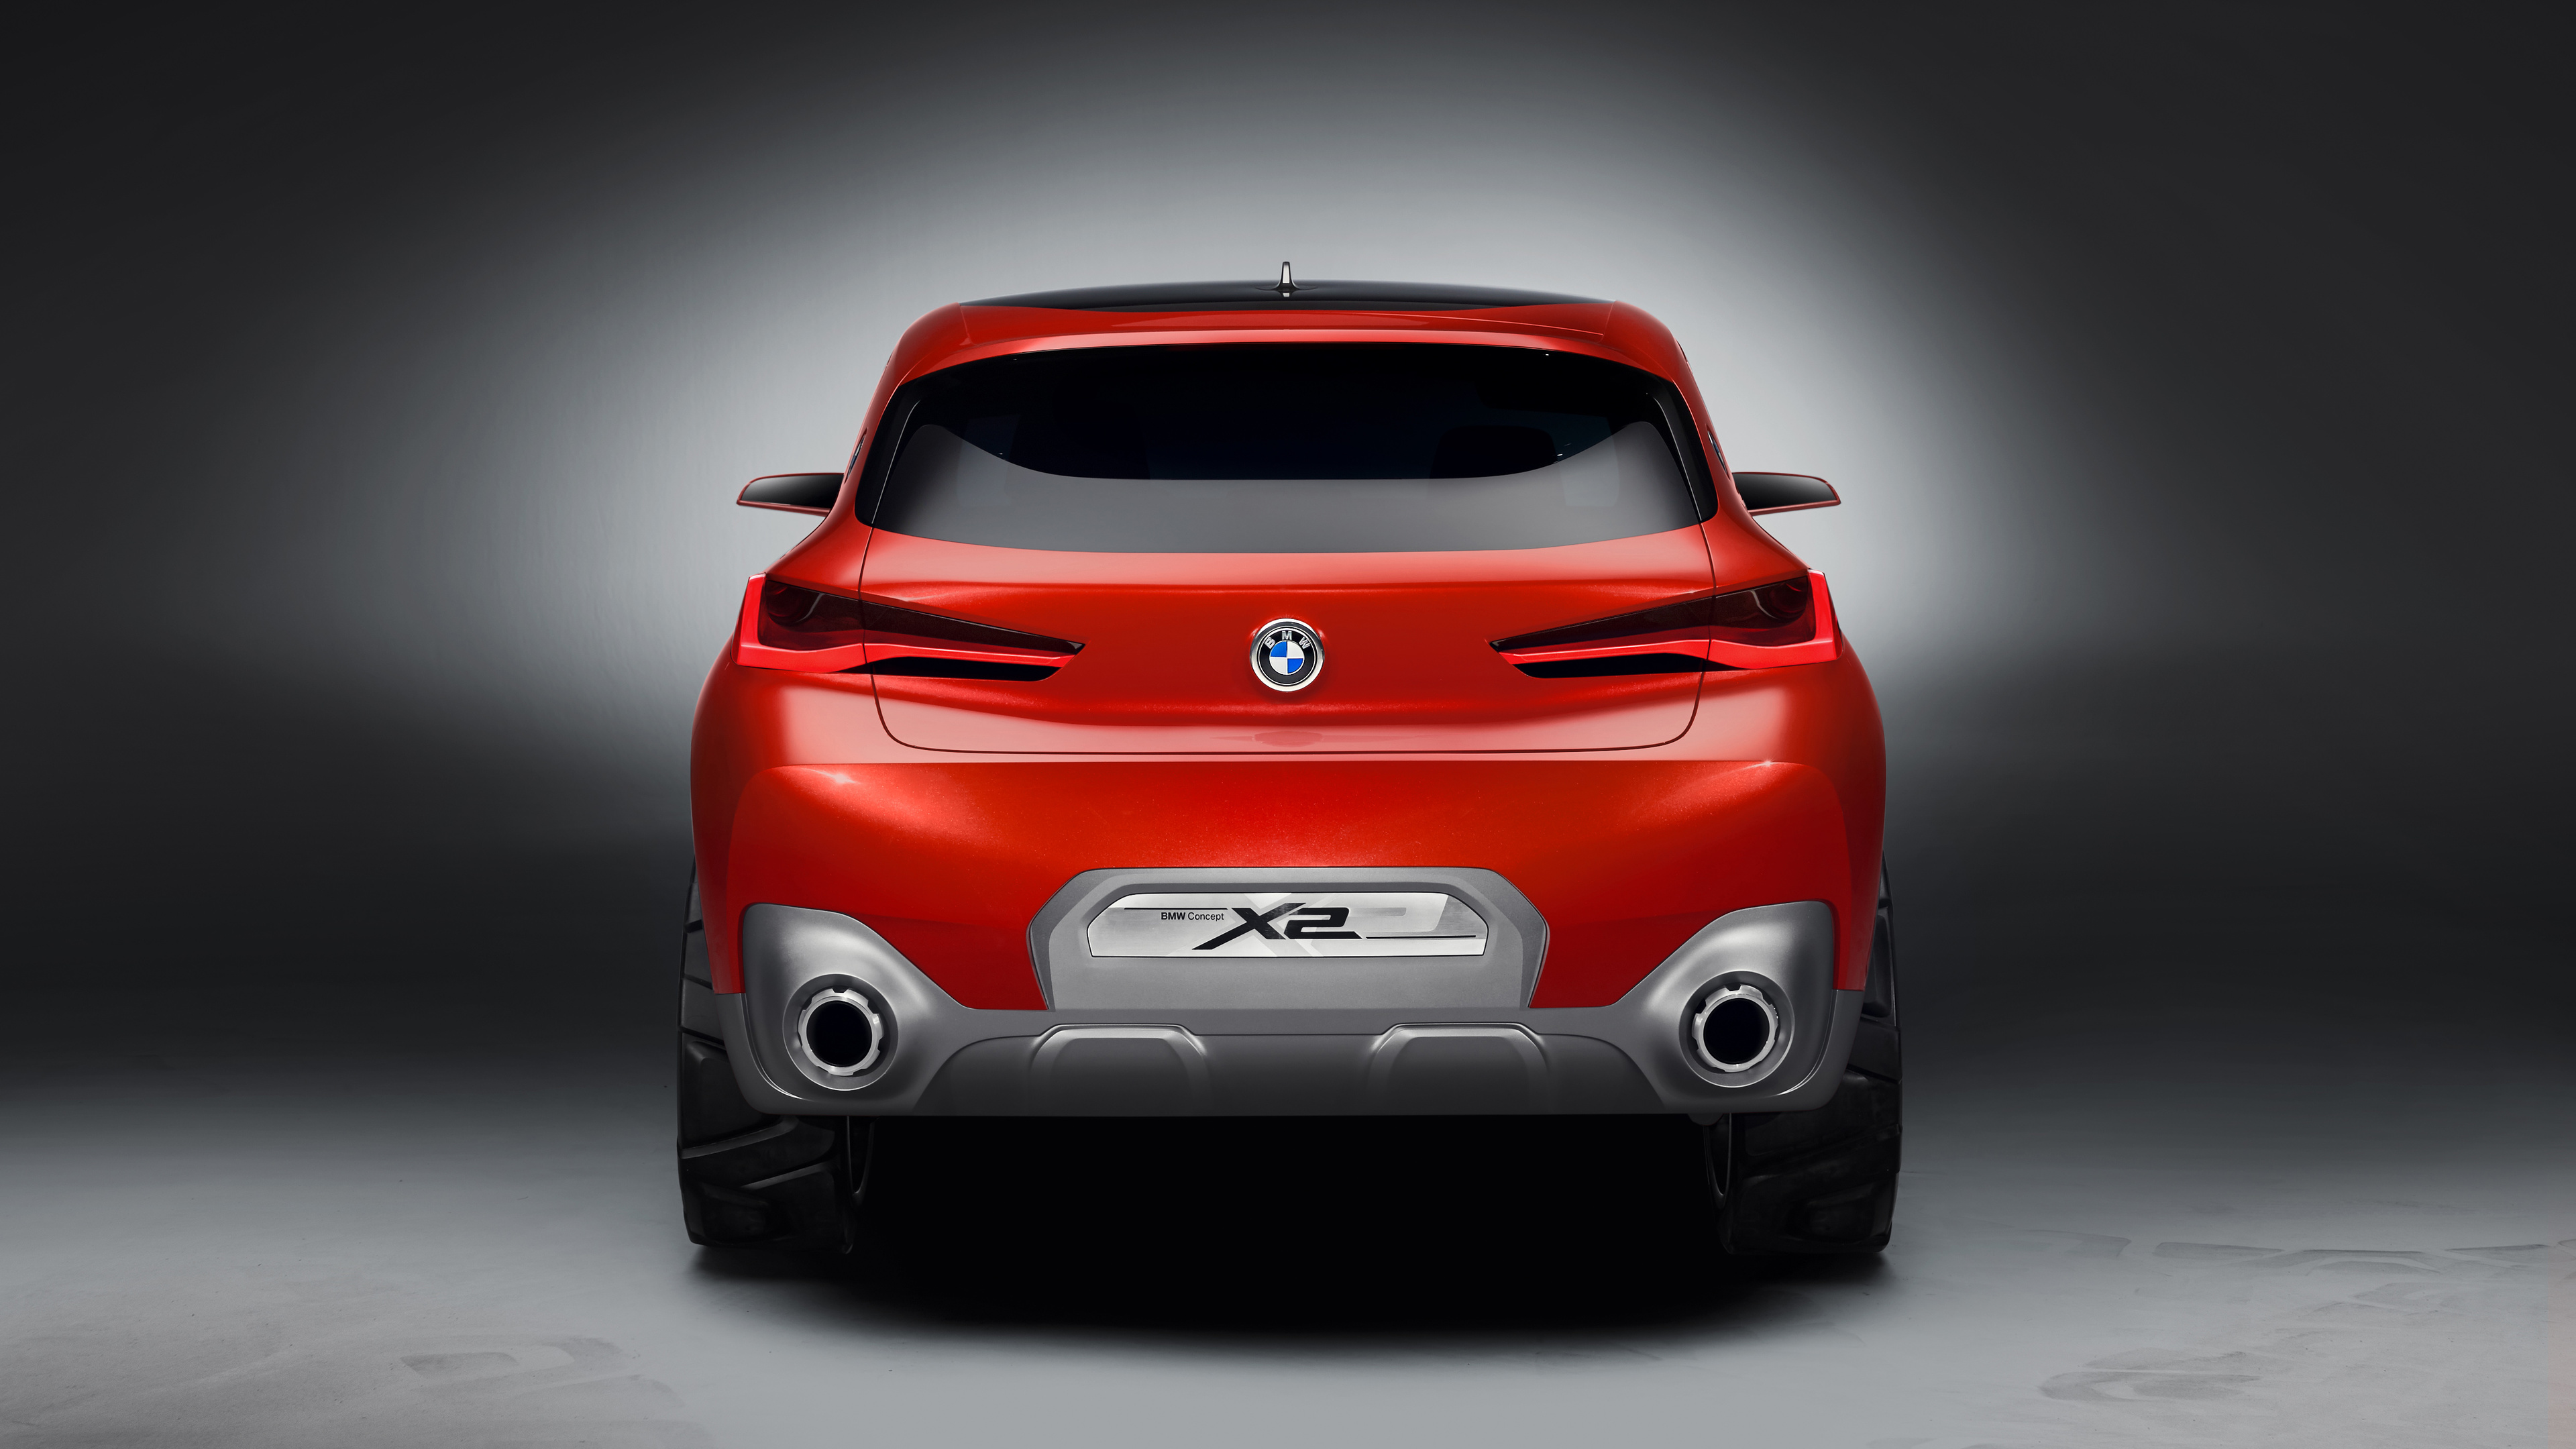 2018 bmw x2 concept car rear 1539104947 - 2018 Bmw X2 Concept Car Rear - hd-wallpapers, cars wallpapers, bmw x2 wallpapers, bmw wallpapers, 4k-wallpapers, 2018 cars wallpapers